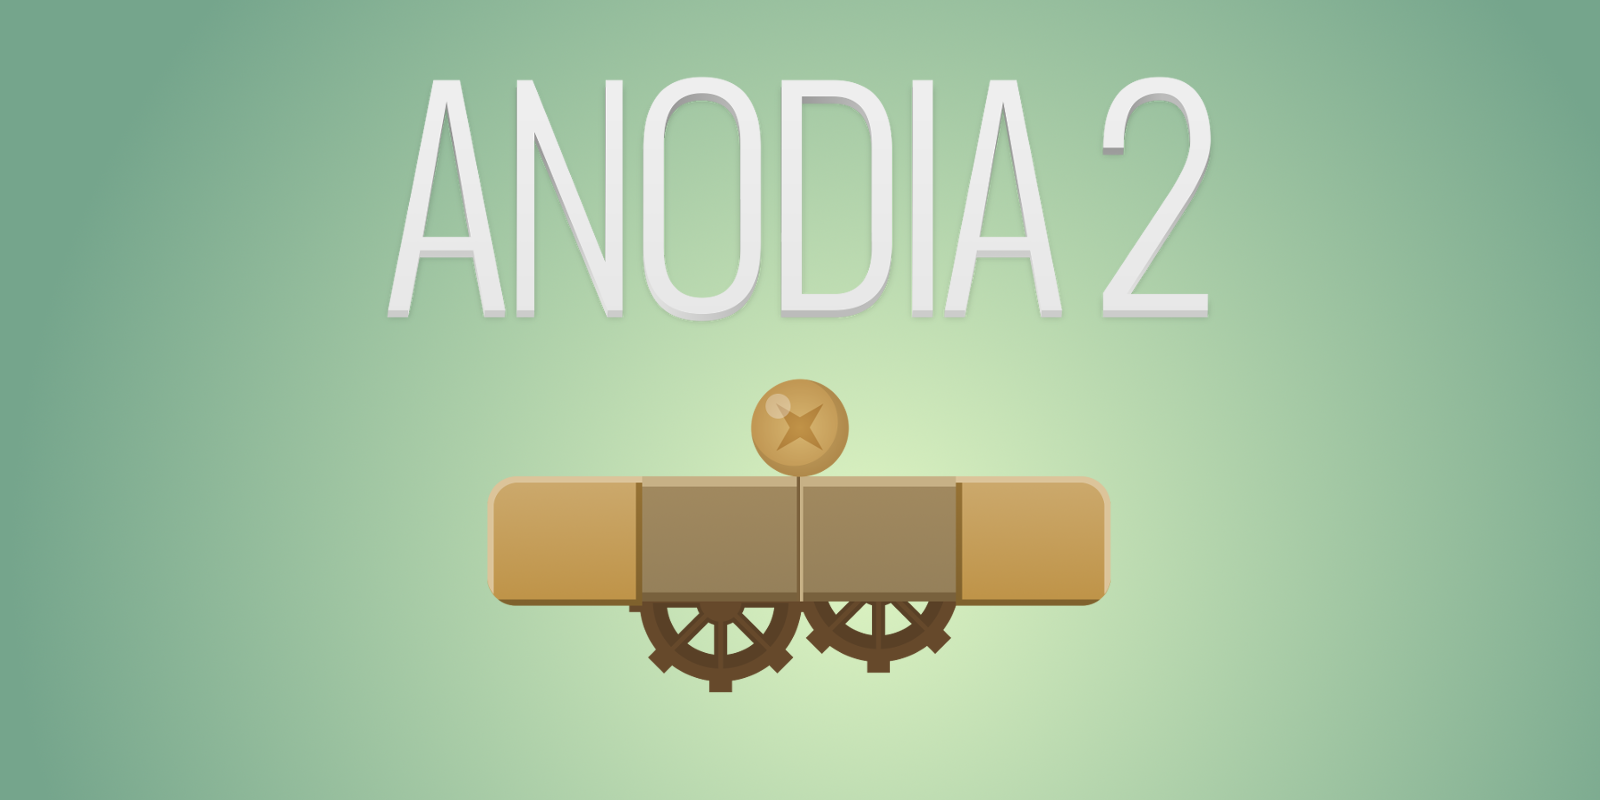 Anodia2-button.png